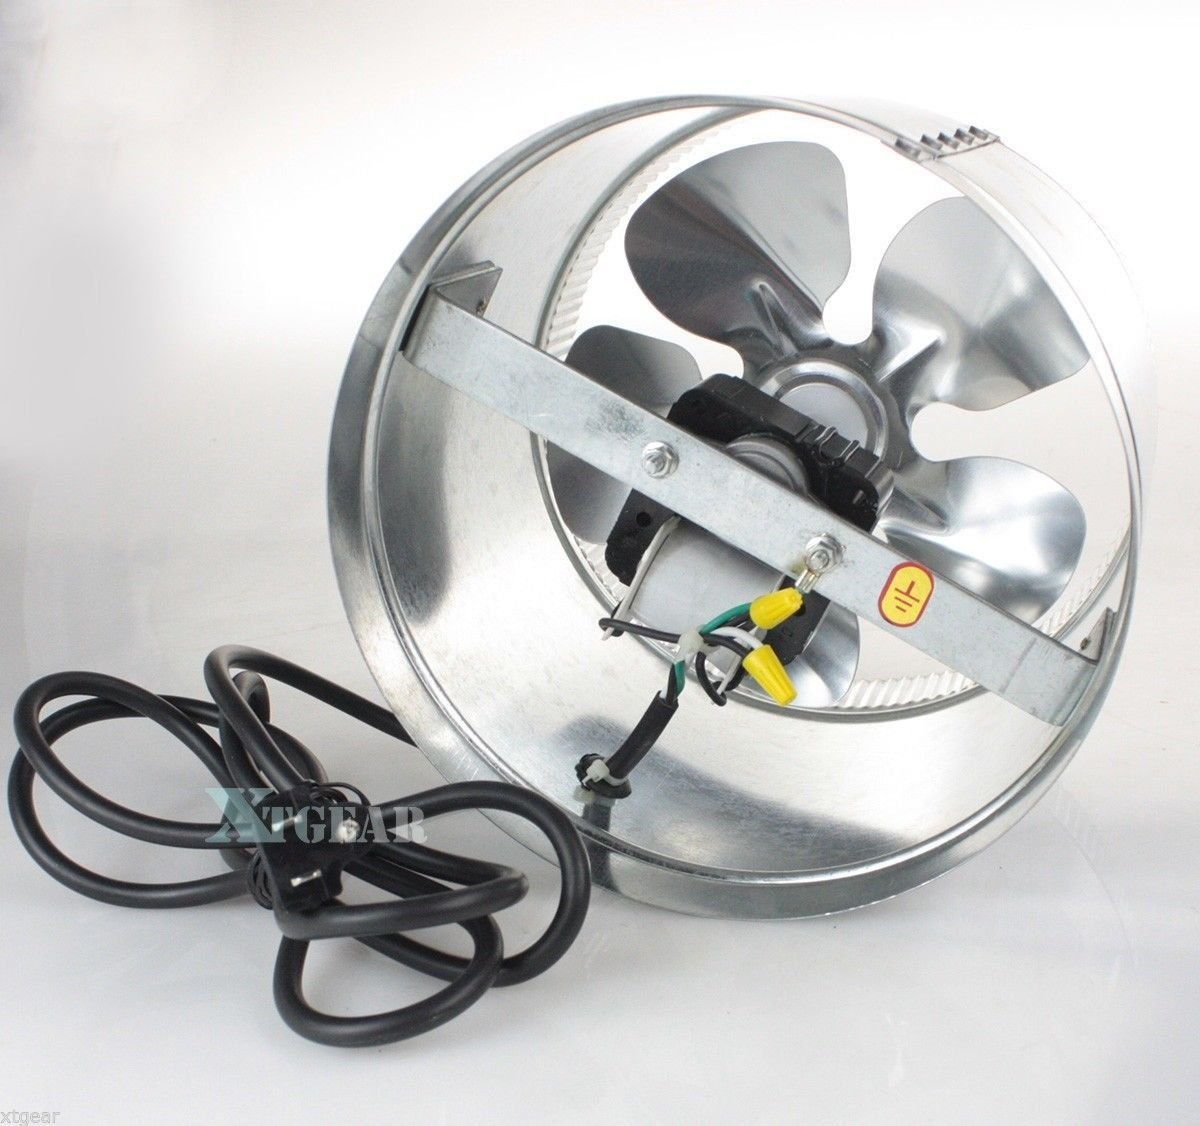 USA Premium Store 10'' Duct Booster Inline Blower Fan Exhaust Vent Air Cooled Hydroponic110V / 60Hz